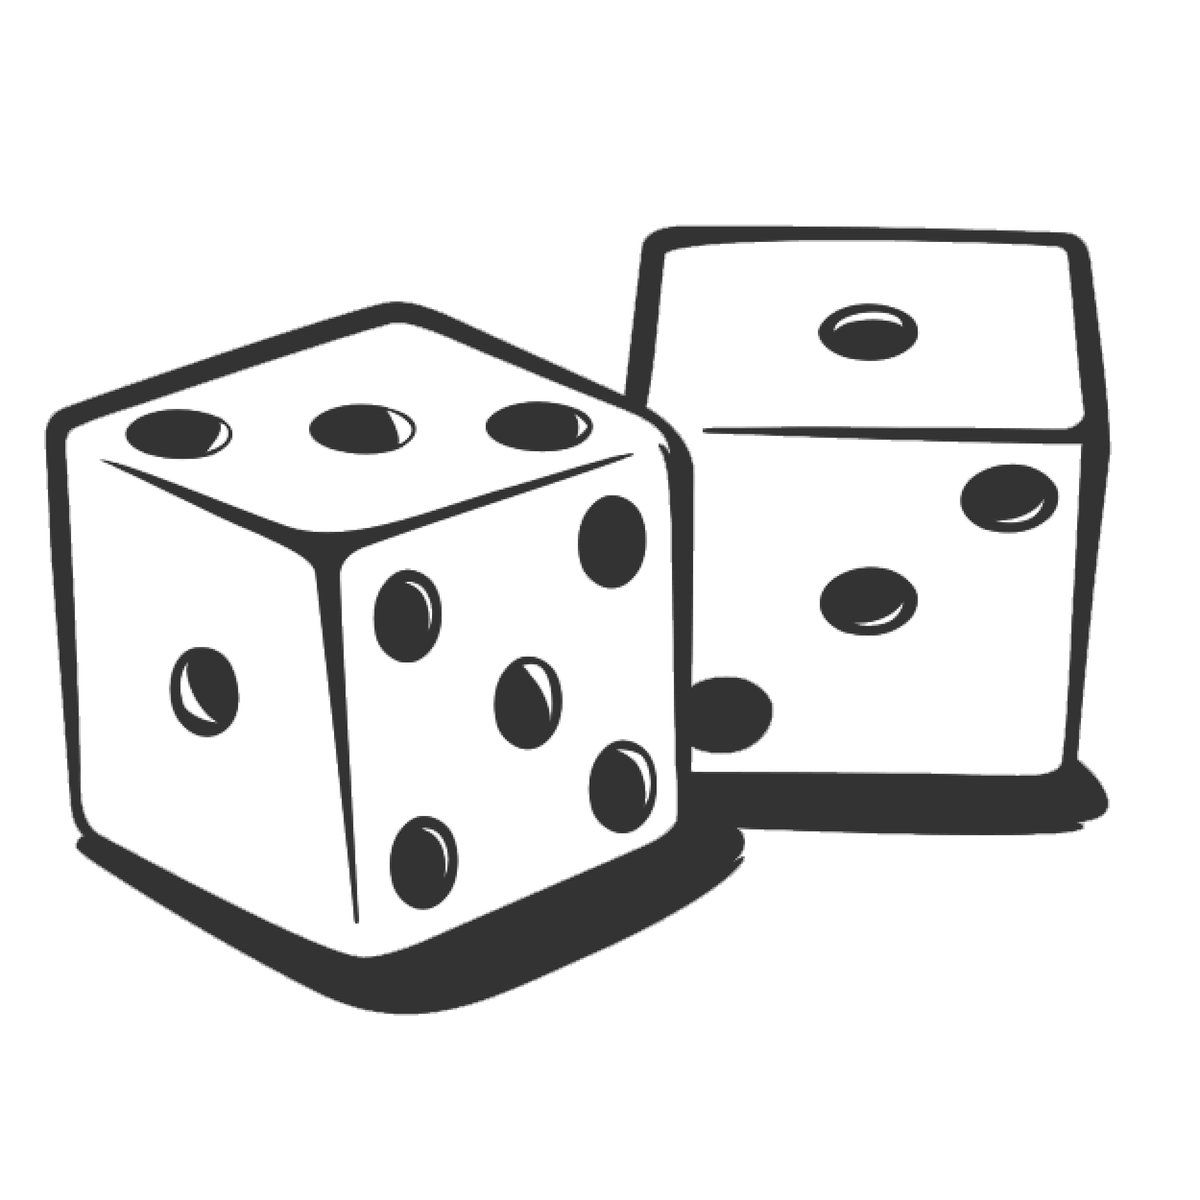 Gaming Clipart Roll Dice Frames Illustrations Hd Images Clip Art Silhouette Stencil Denim Art